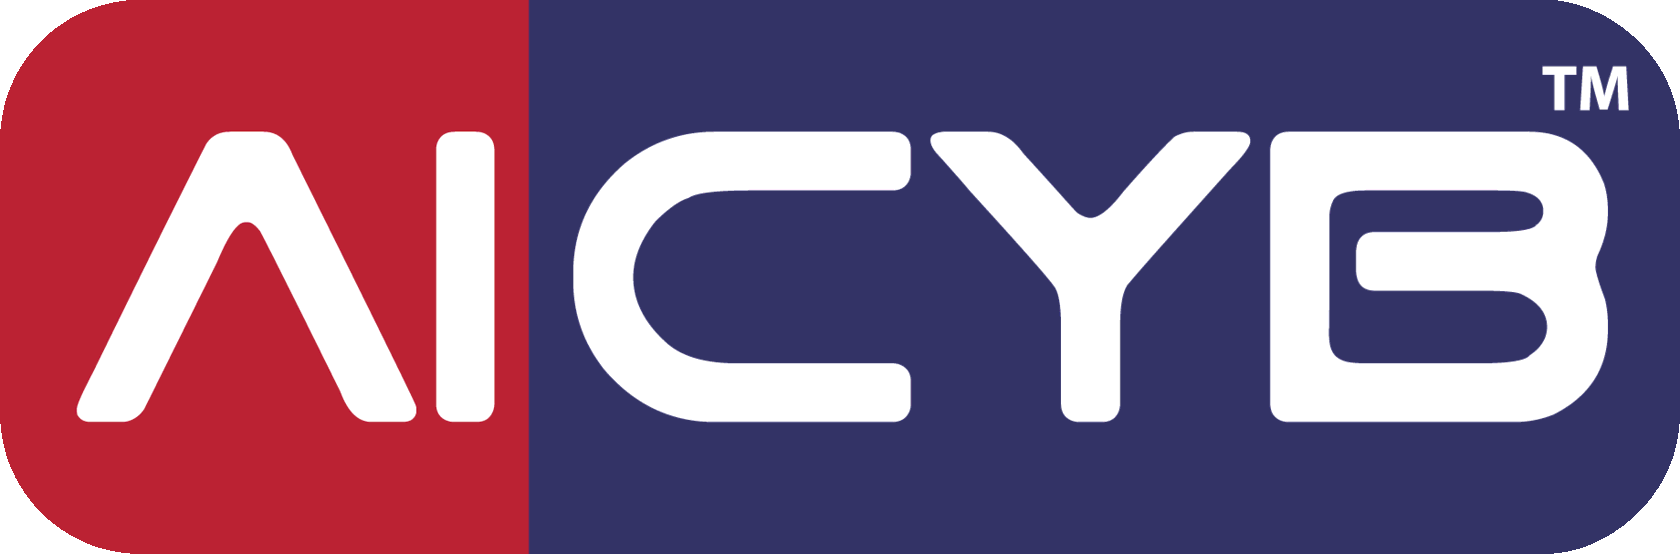 AICYB | Smarter Security with Facial and Object Recognition